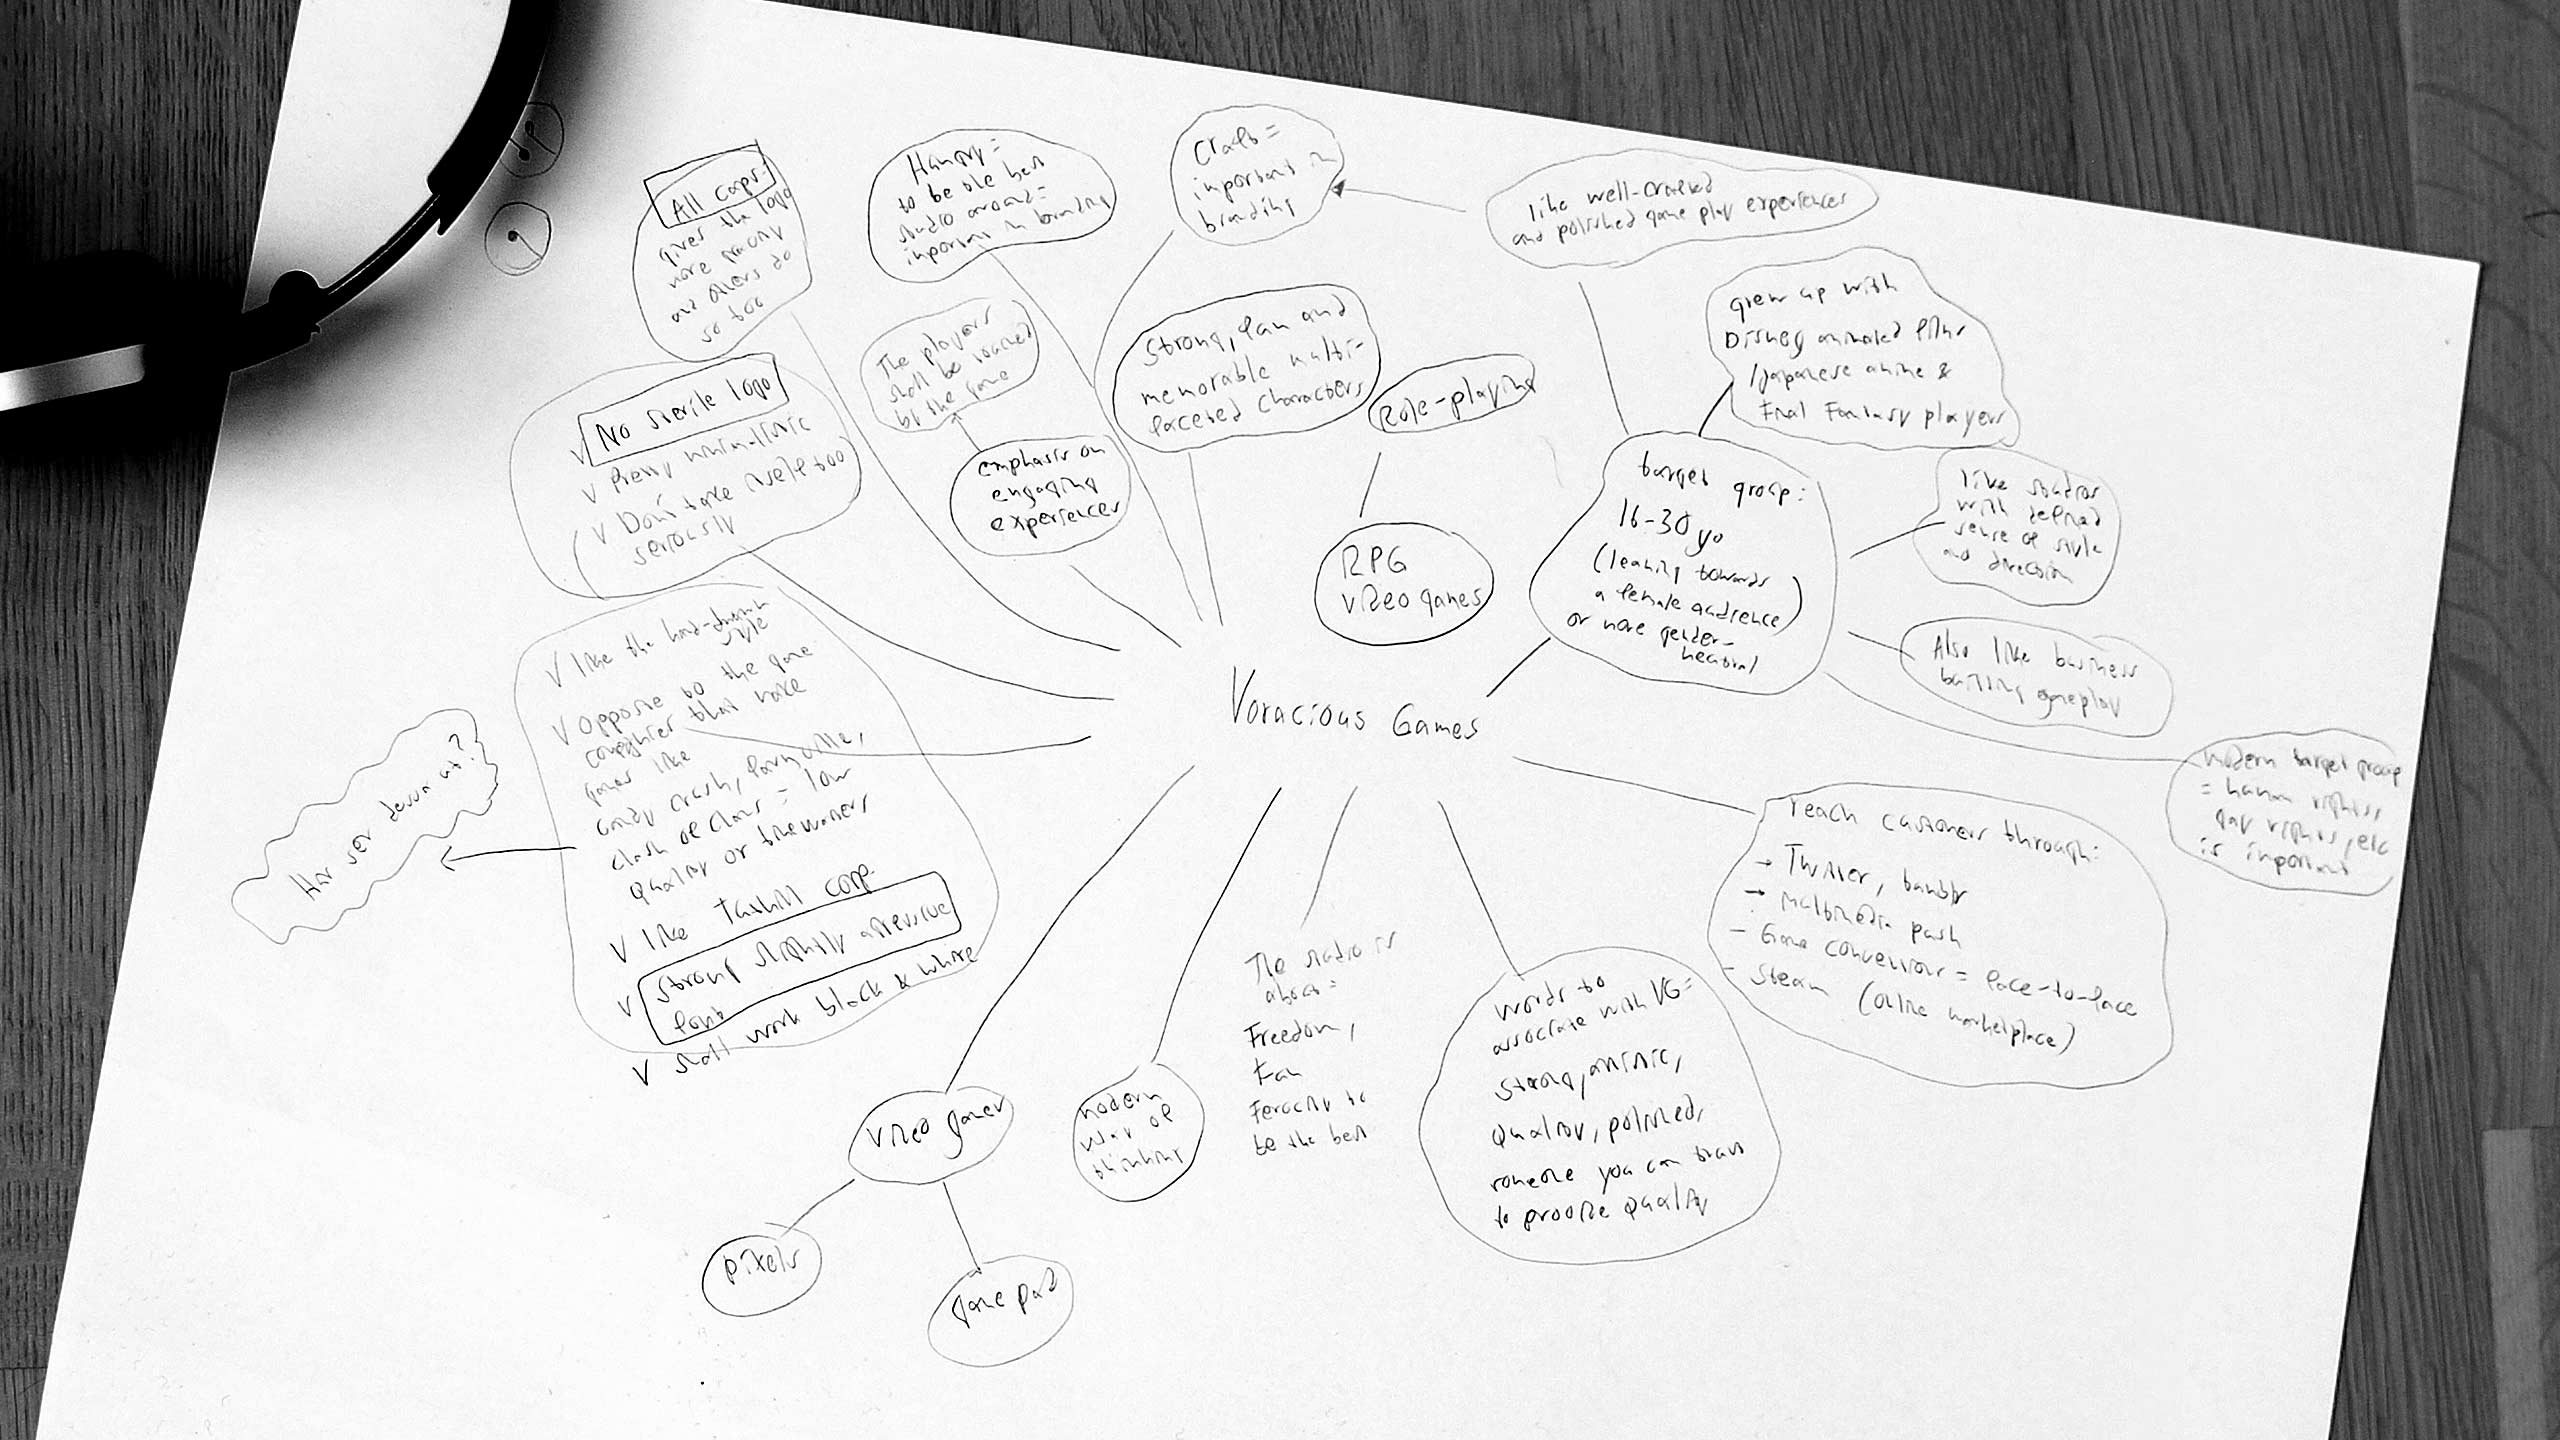 Mind map for Voracious Games